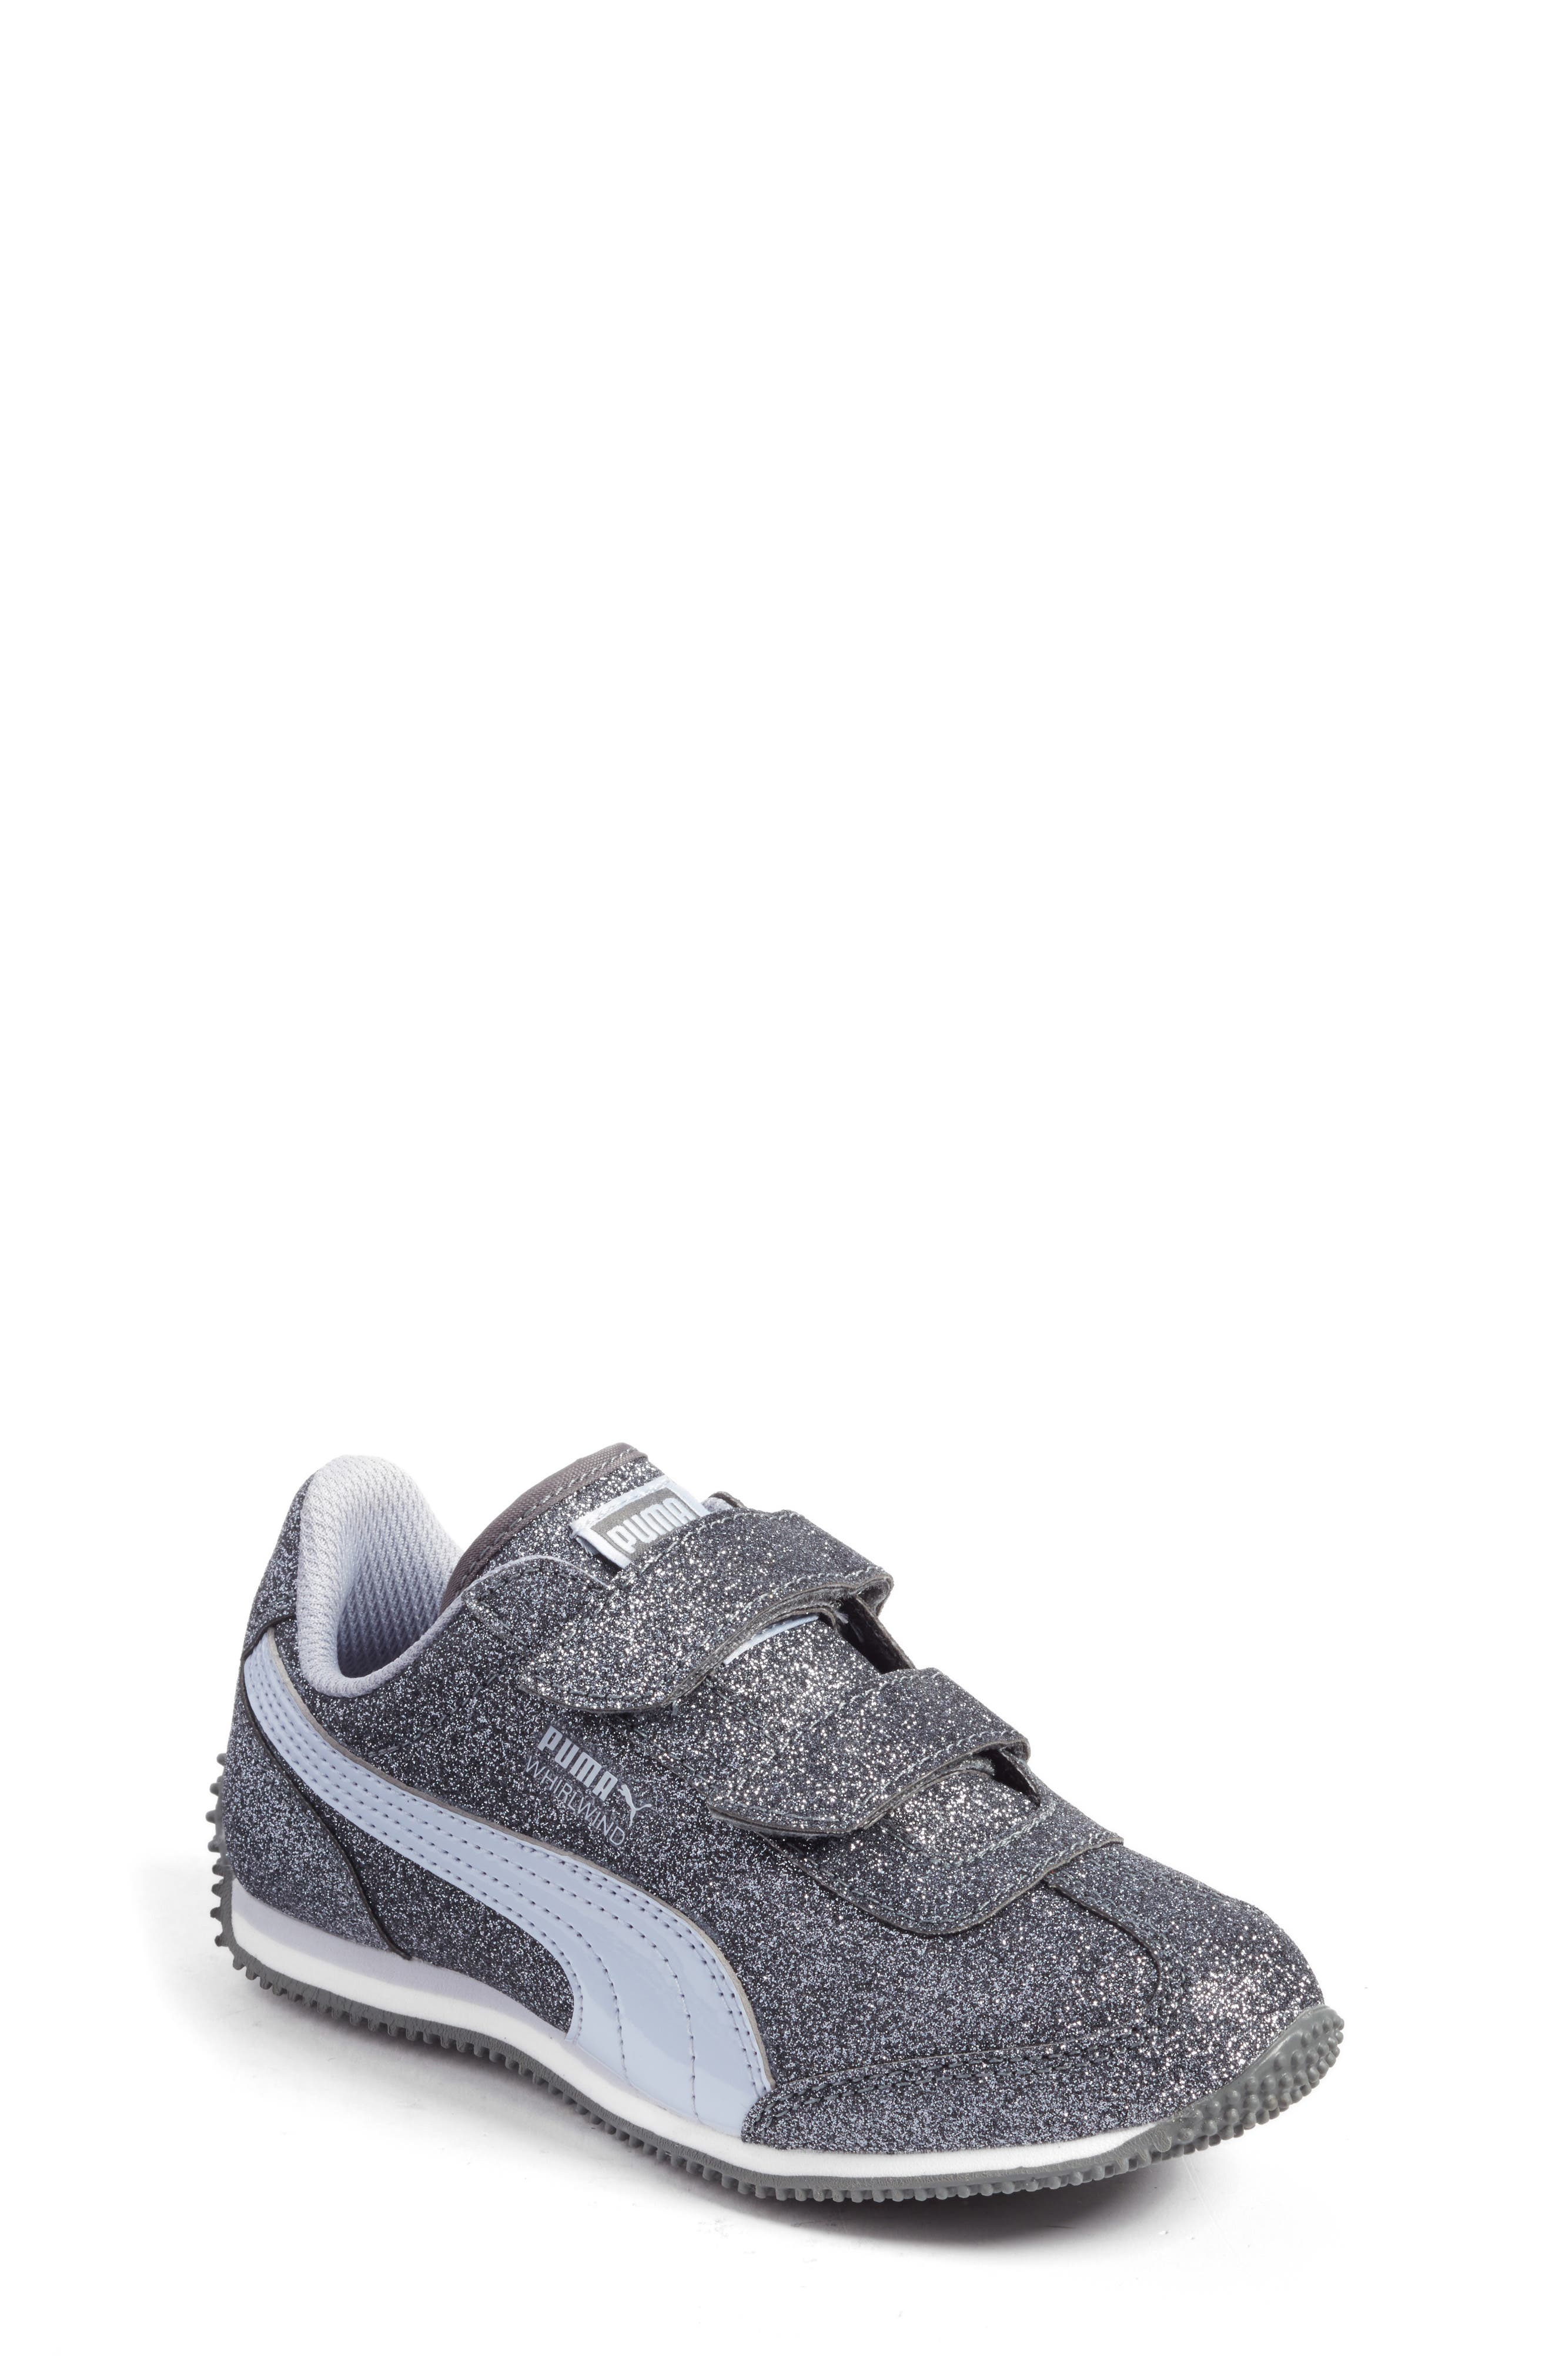 PUMA Whirlwind Glitz Sneaker (Toddler, Little Kid & Big Kid)